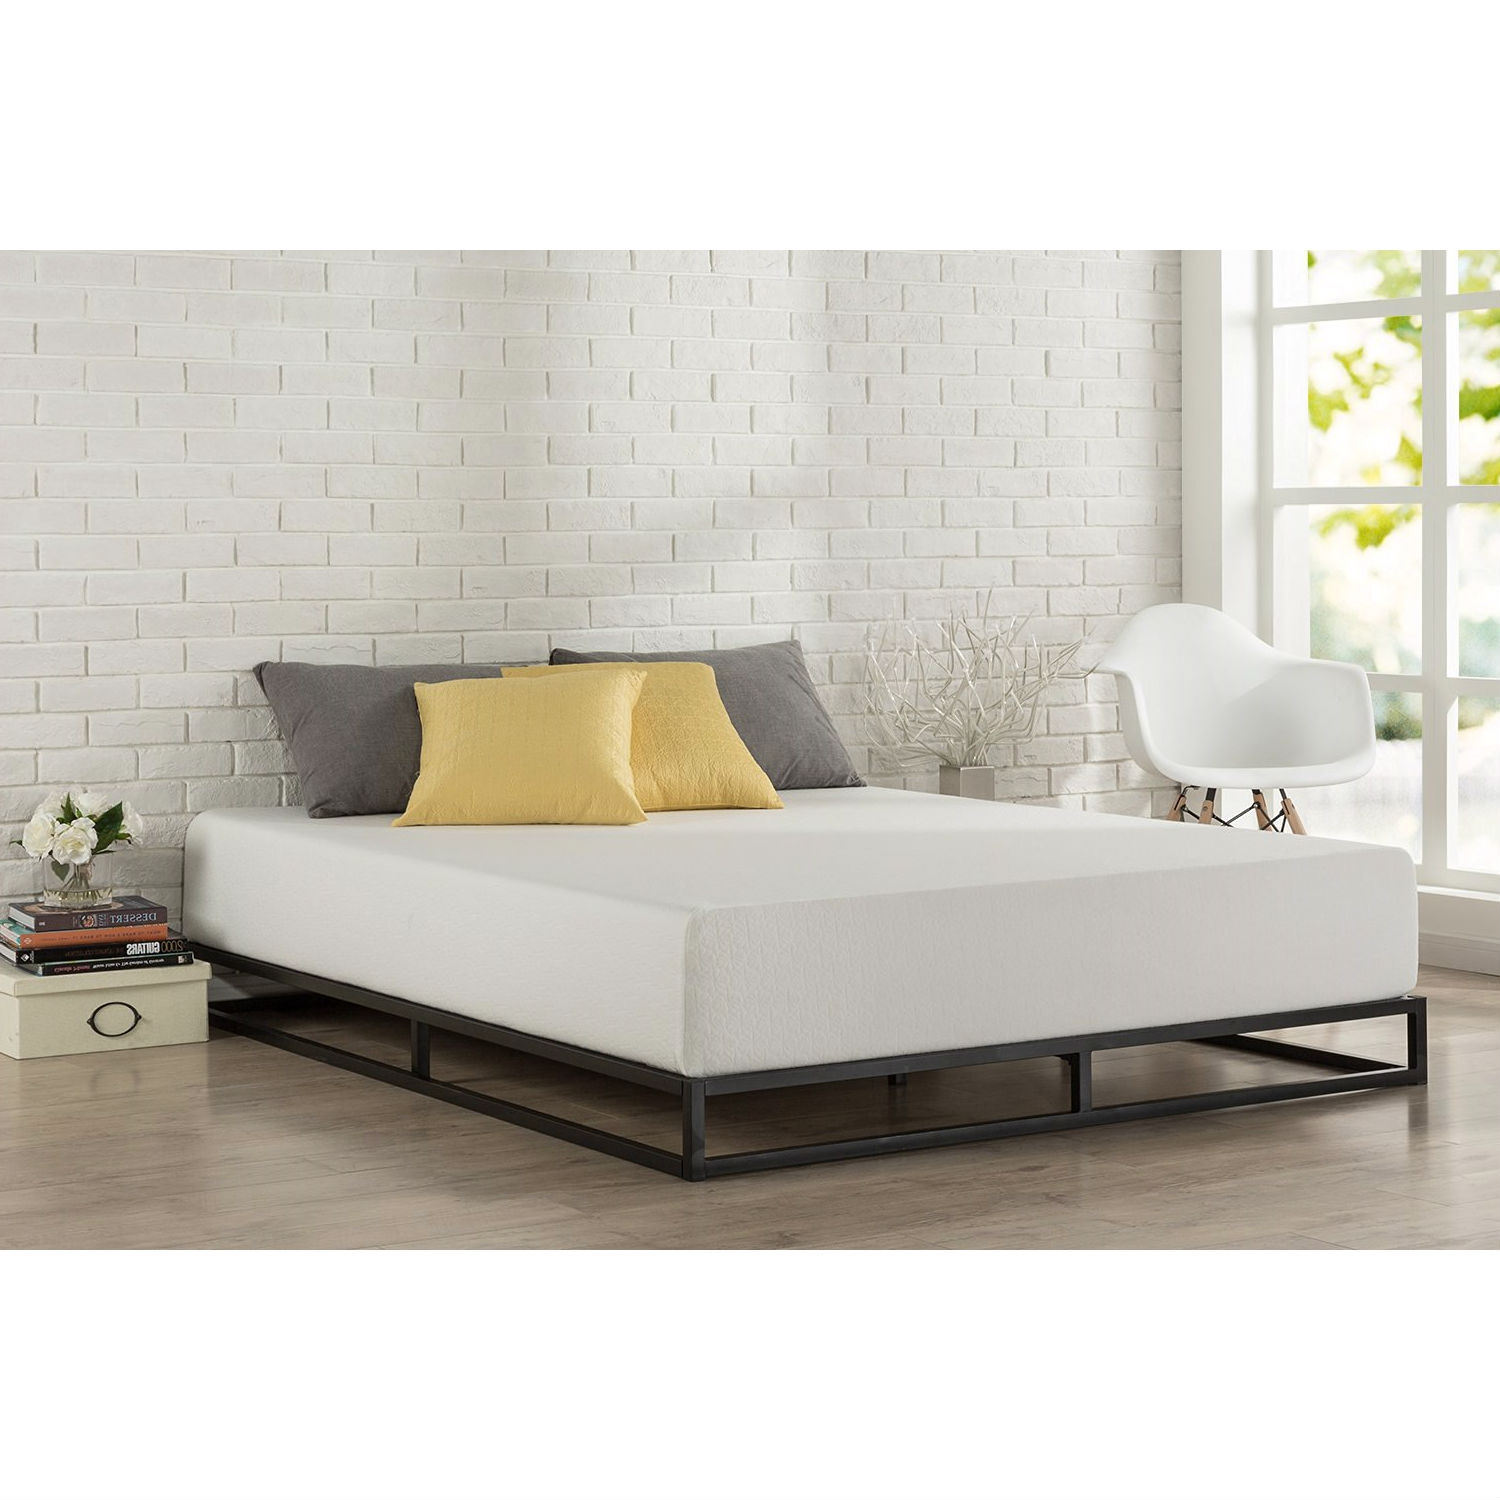 Queen Platform Bed Frames queen size 6-inch low profile metal platform bed frame with wooden